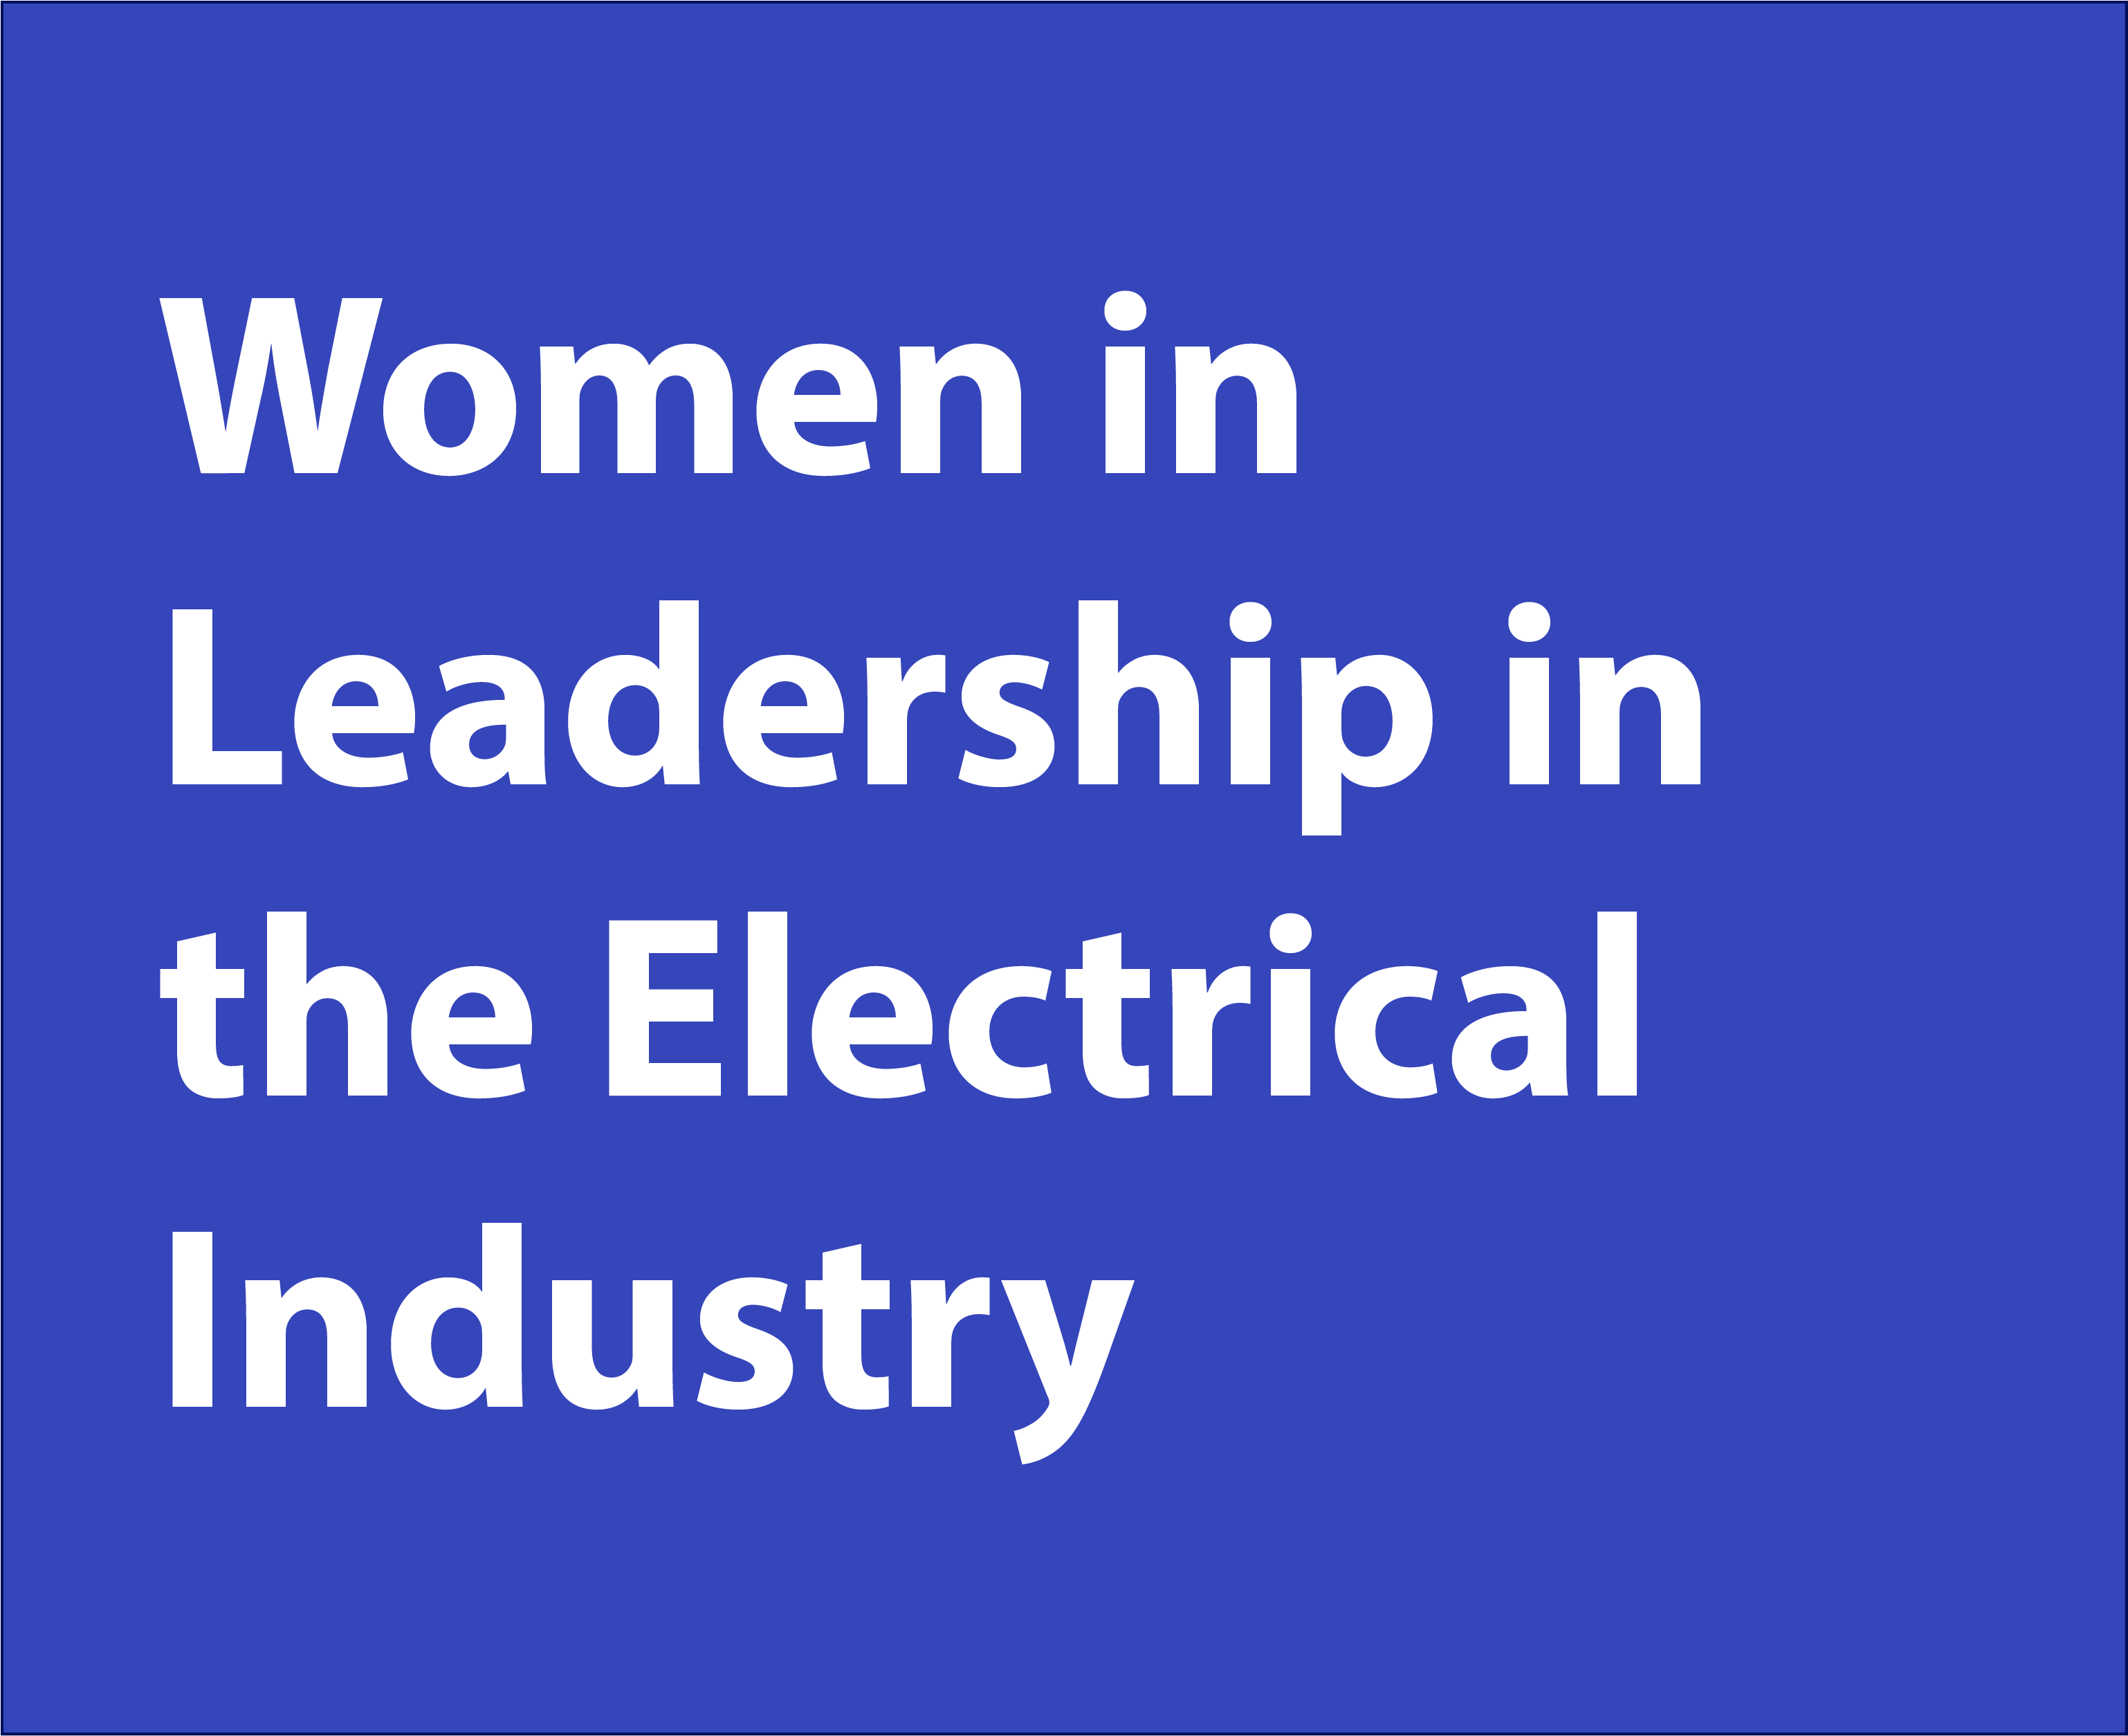 Women in Leadership in the Electrical Industry